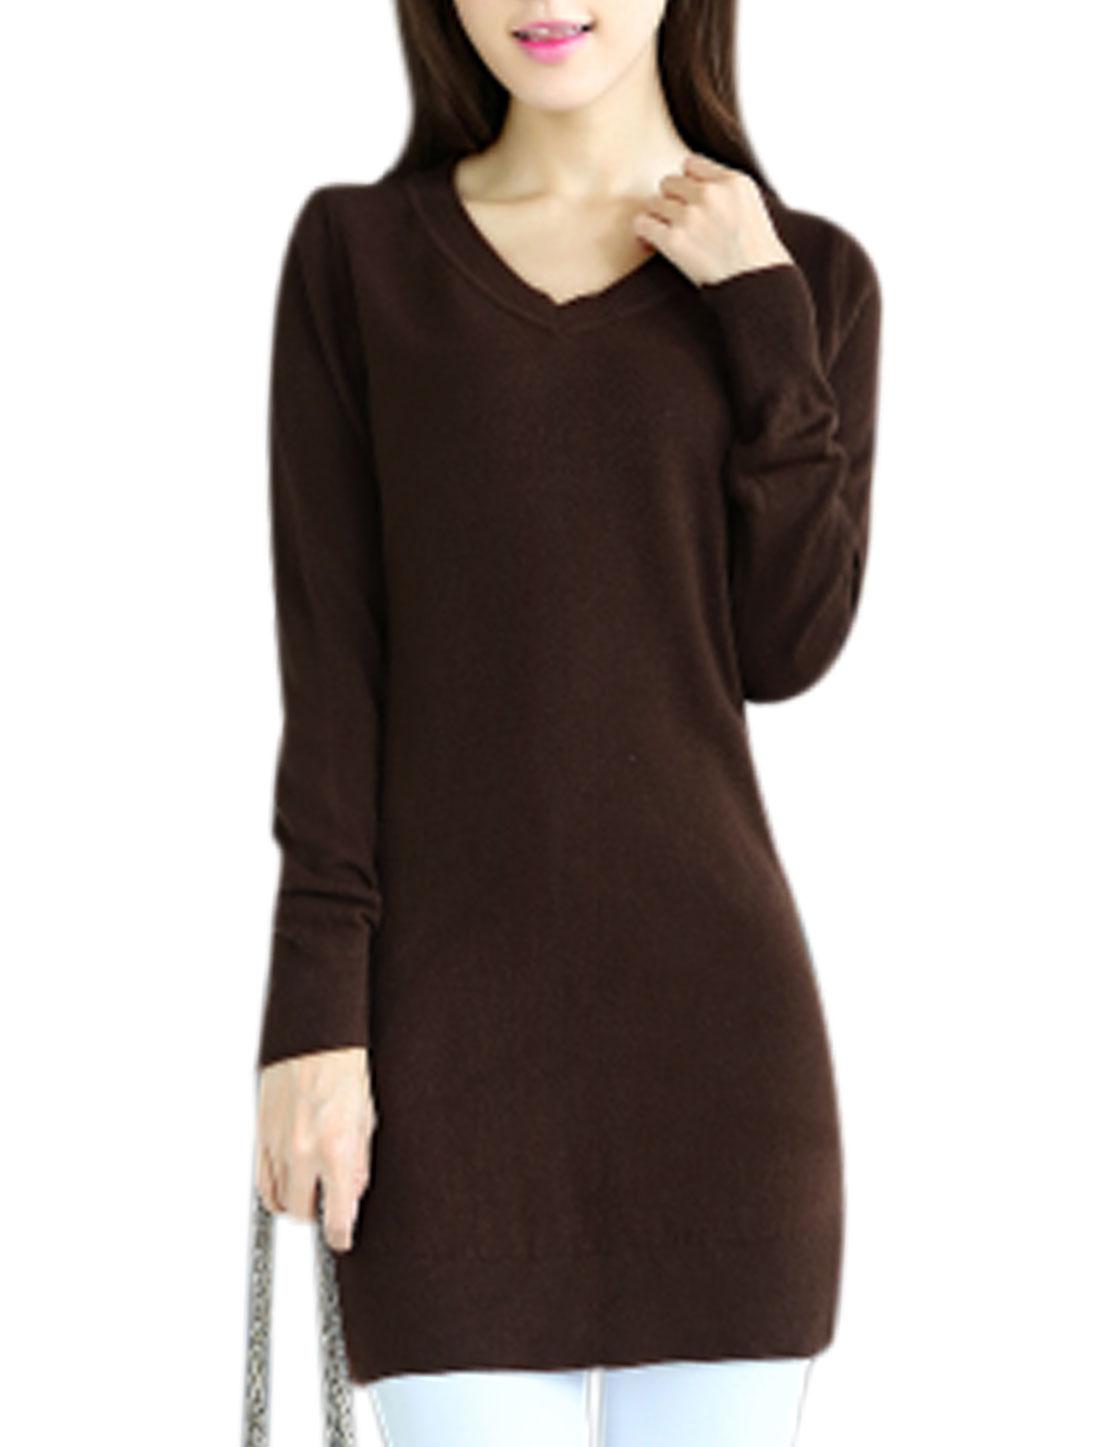 Slipover Long Sleeve Slim Fit Coffee Tunic Knit Shirt for Lady XS